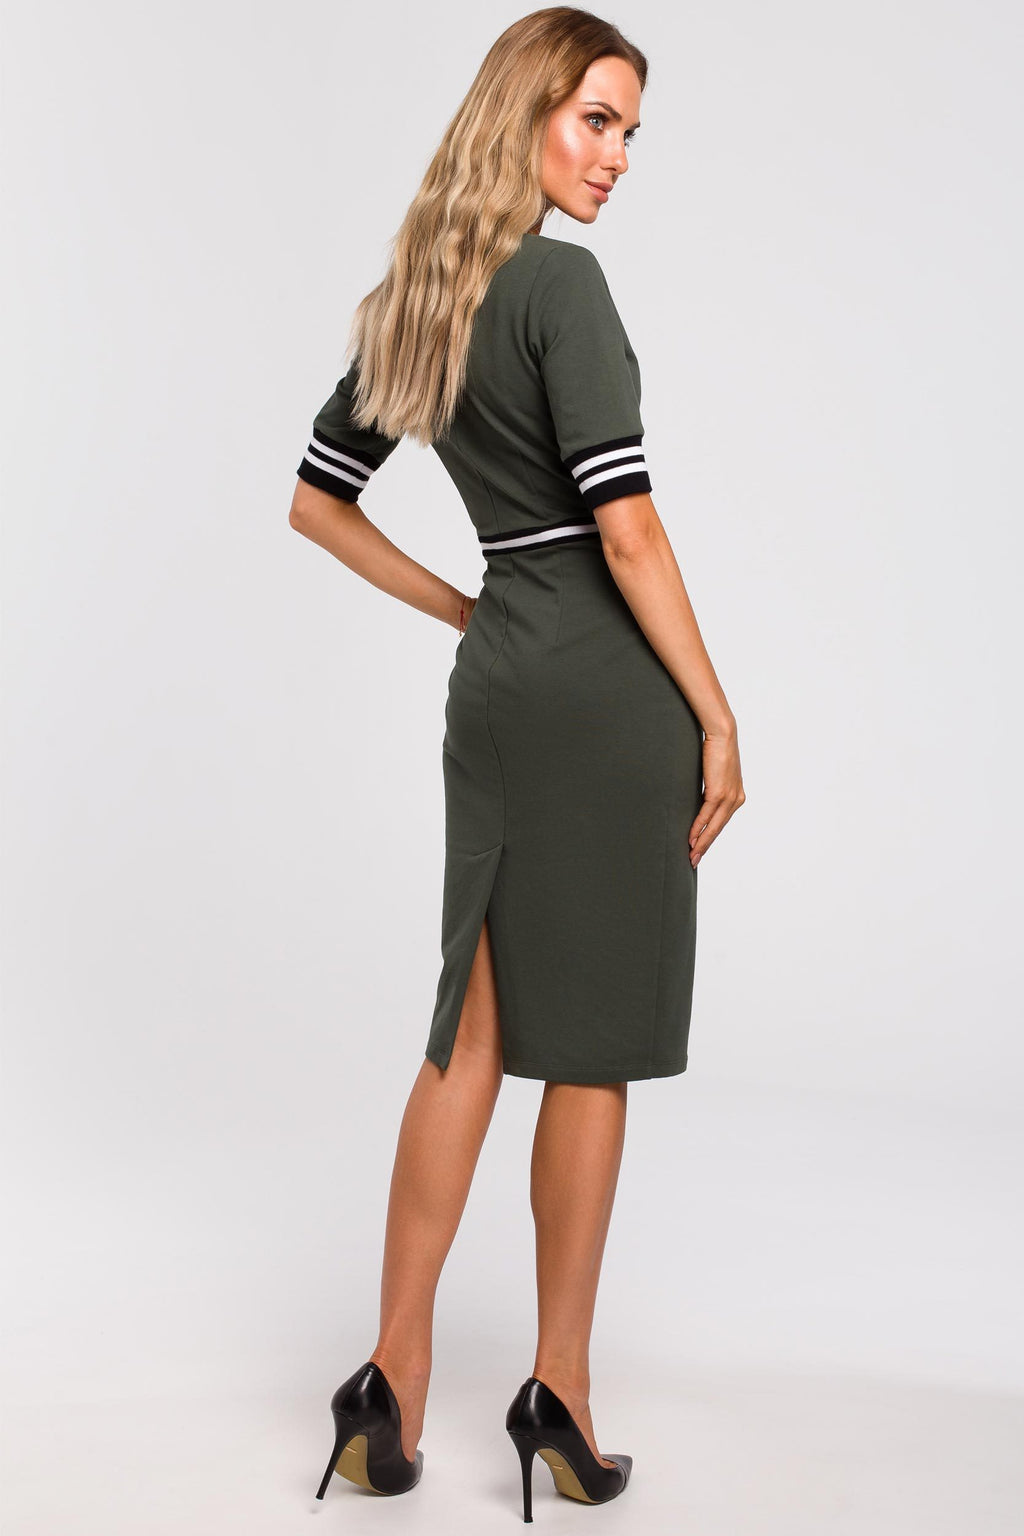 Khaki Cotton Pencil Dress With Stripe Ribbed Details - So Chic Boutique